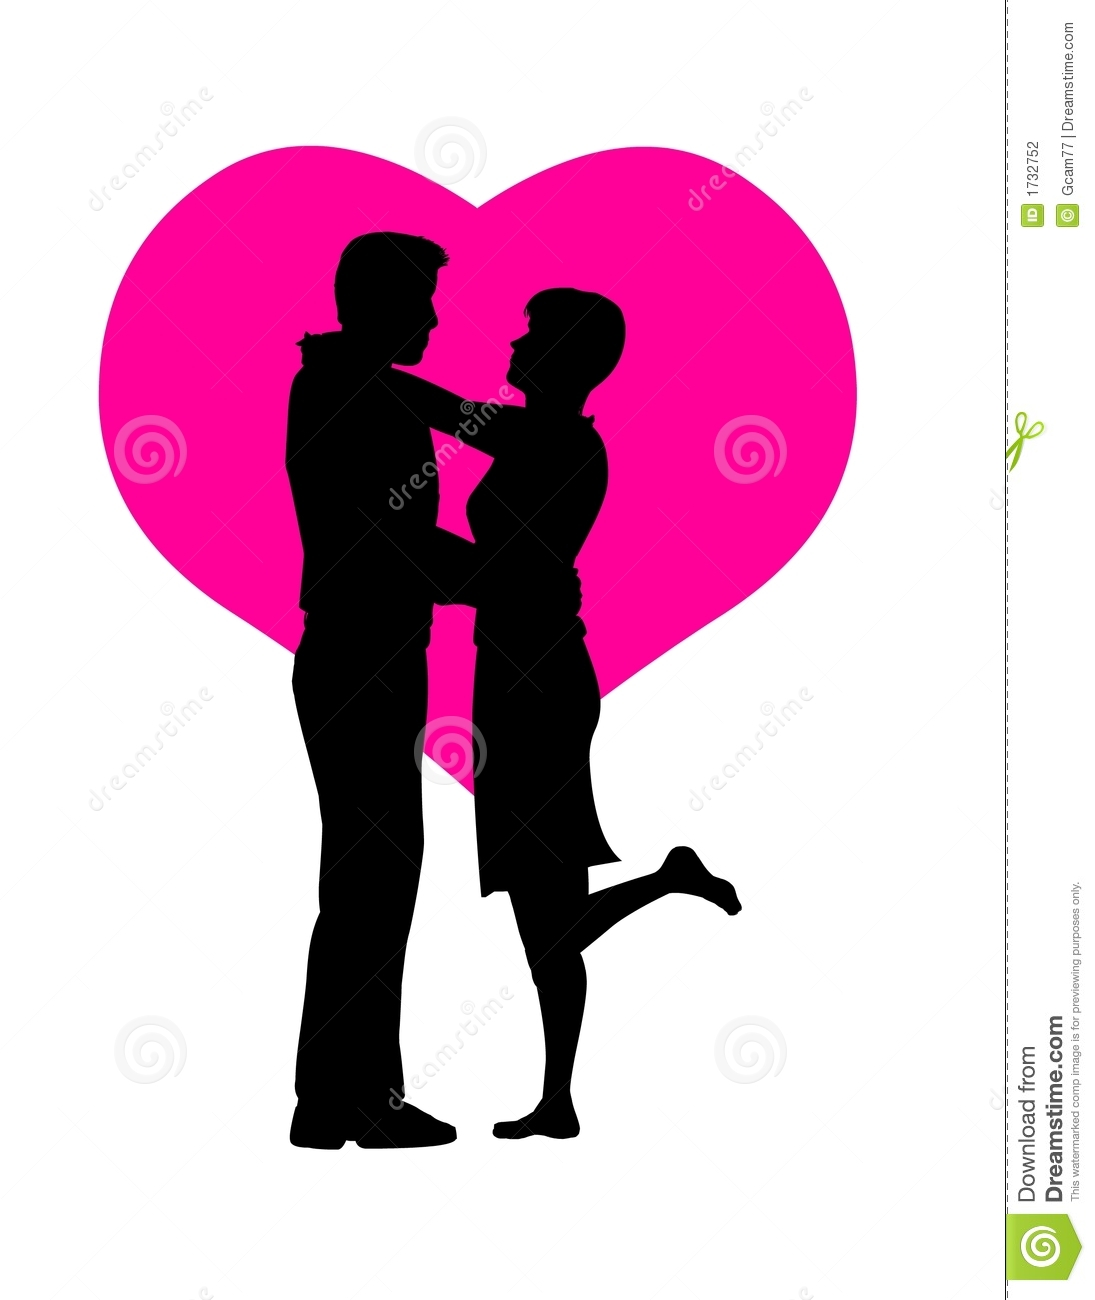 Romantic clipart #10, Download drawings